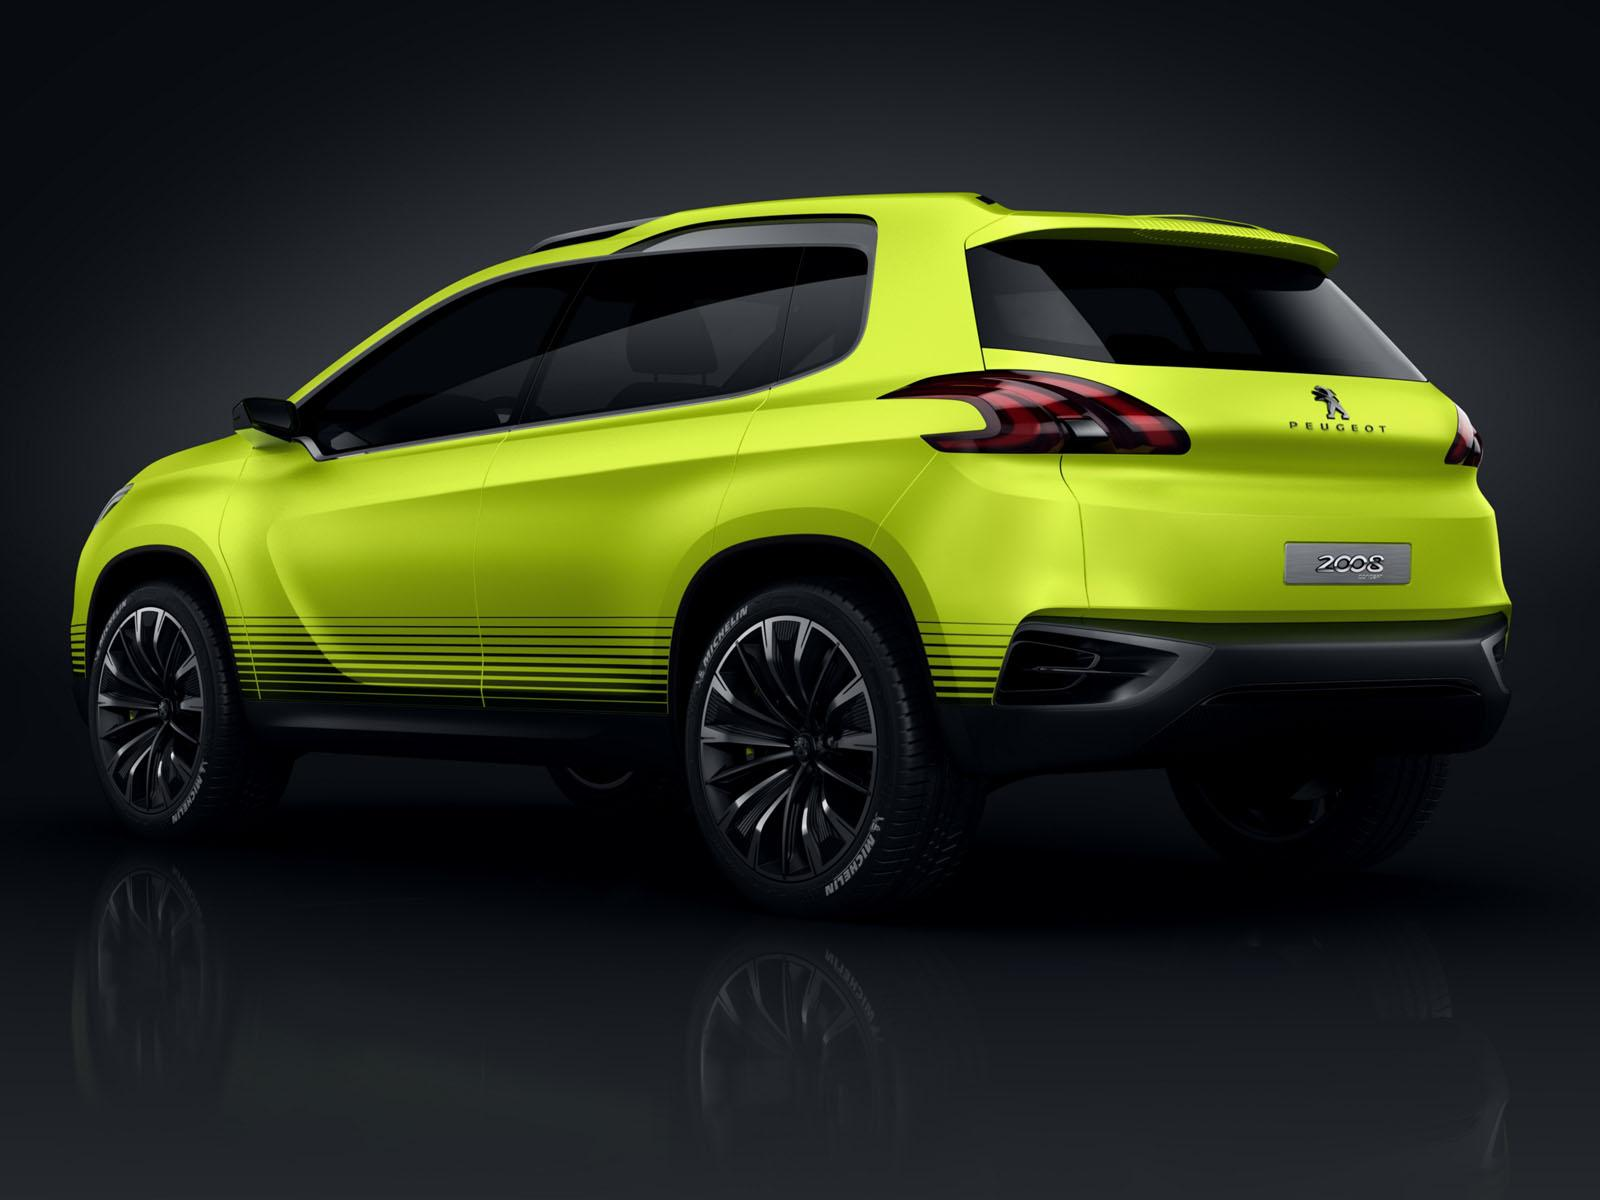 2013 Peugeot 2008 Concept 3 2013 Peugeot 2008 Concept gets leaked before it gets showcased